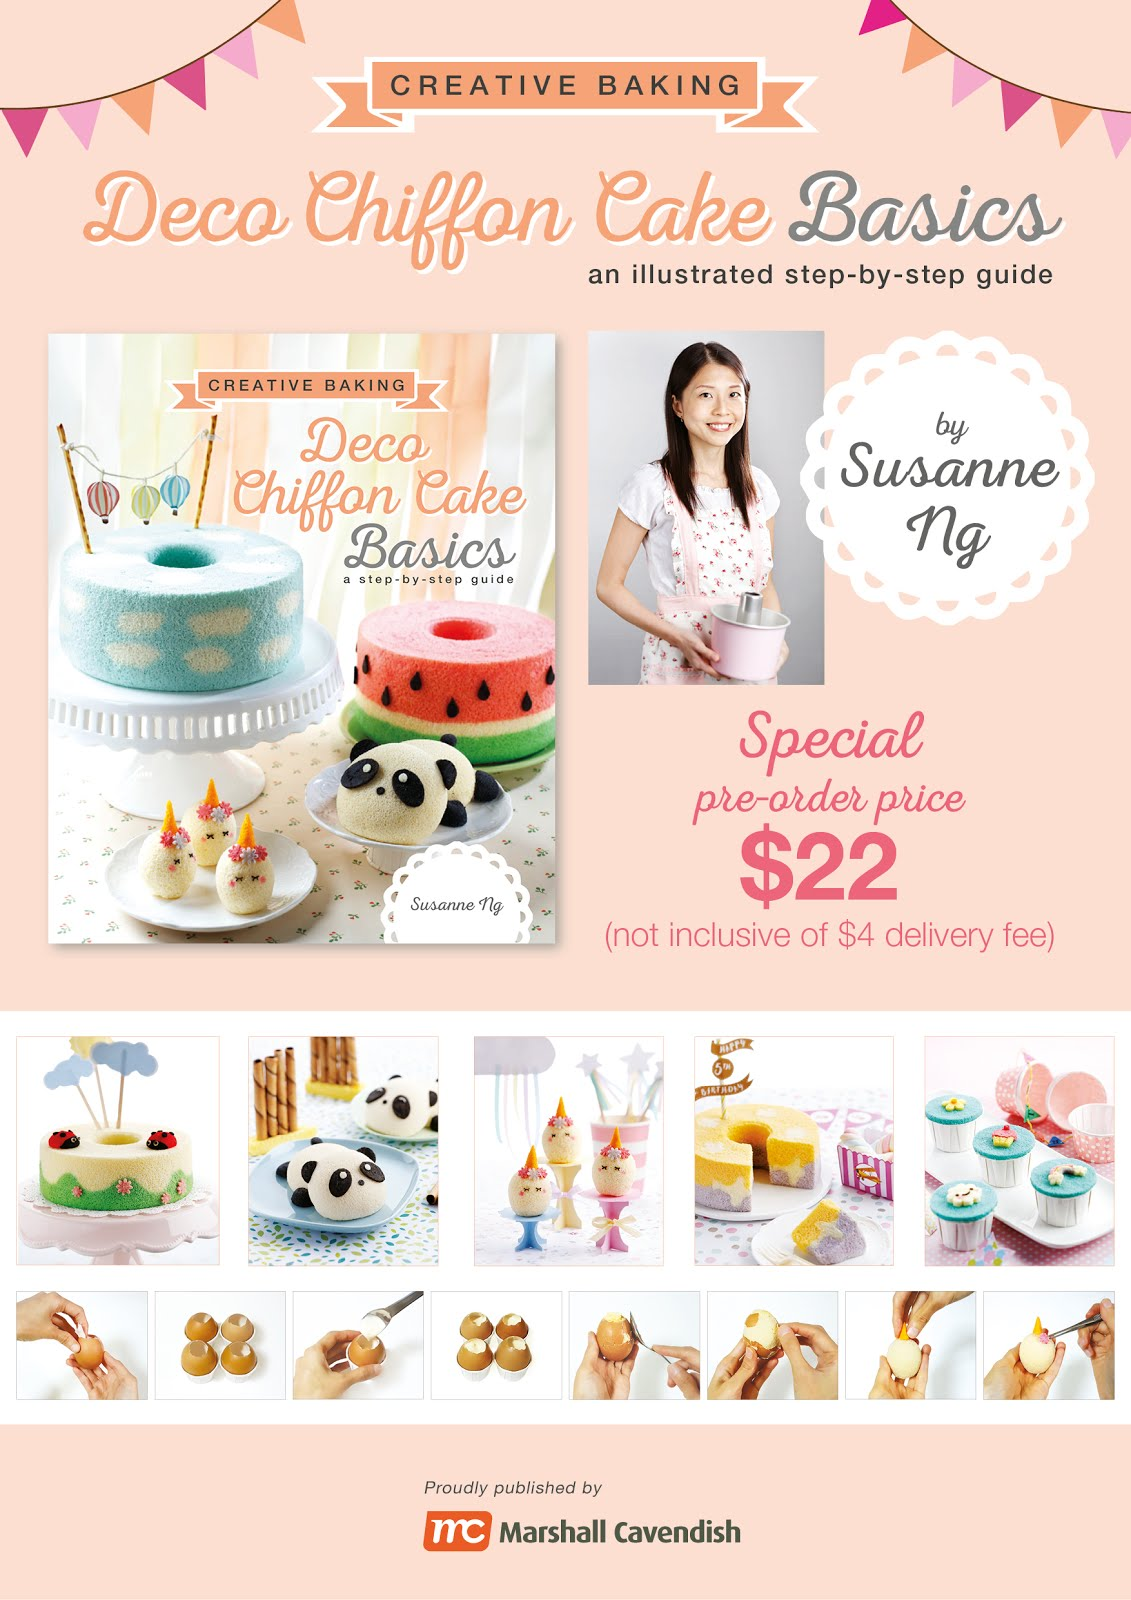 Pre-order for Deco Chiffon Cake Basics